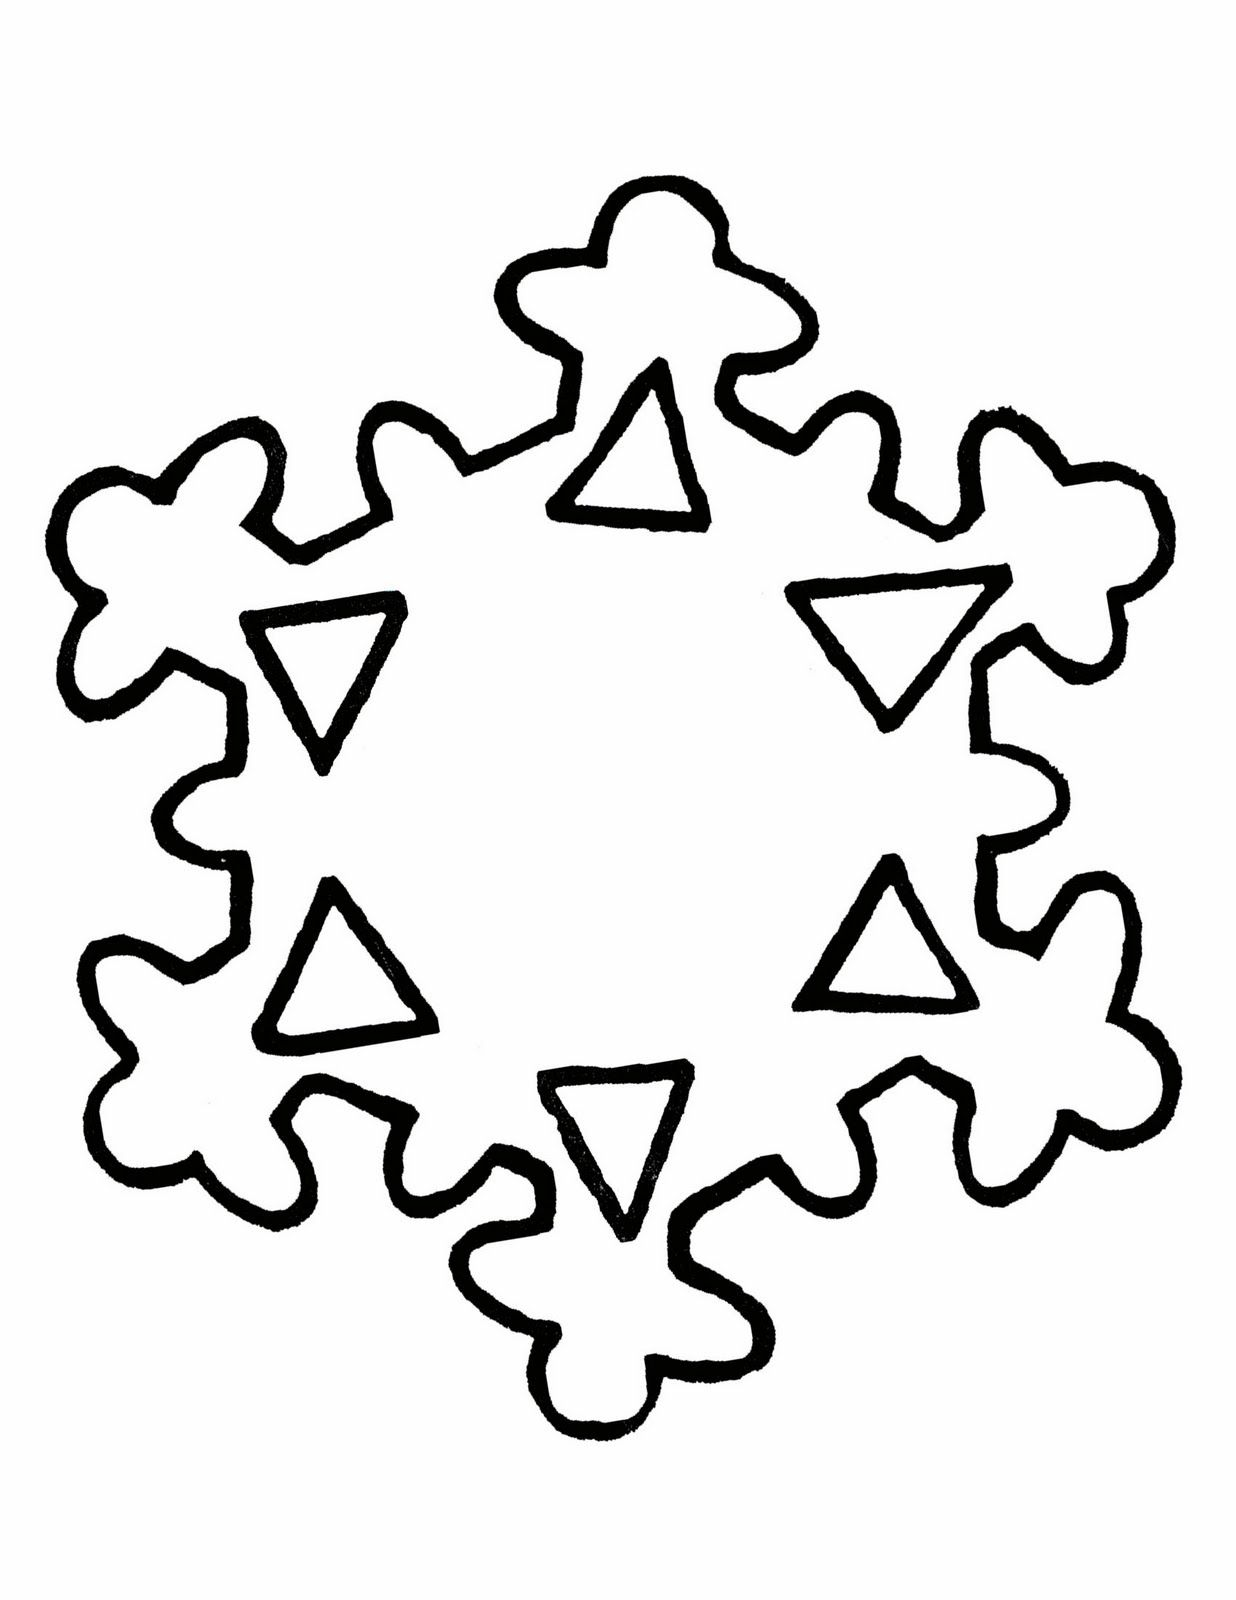 It's just a picture of Old Fashioned Snowflakes Print Out